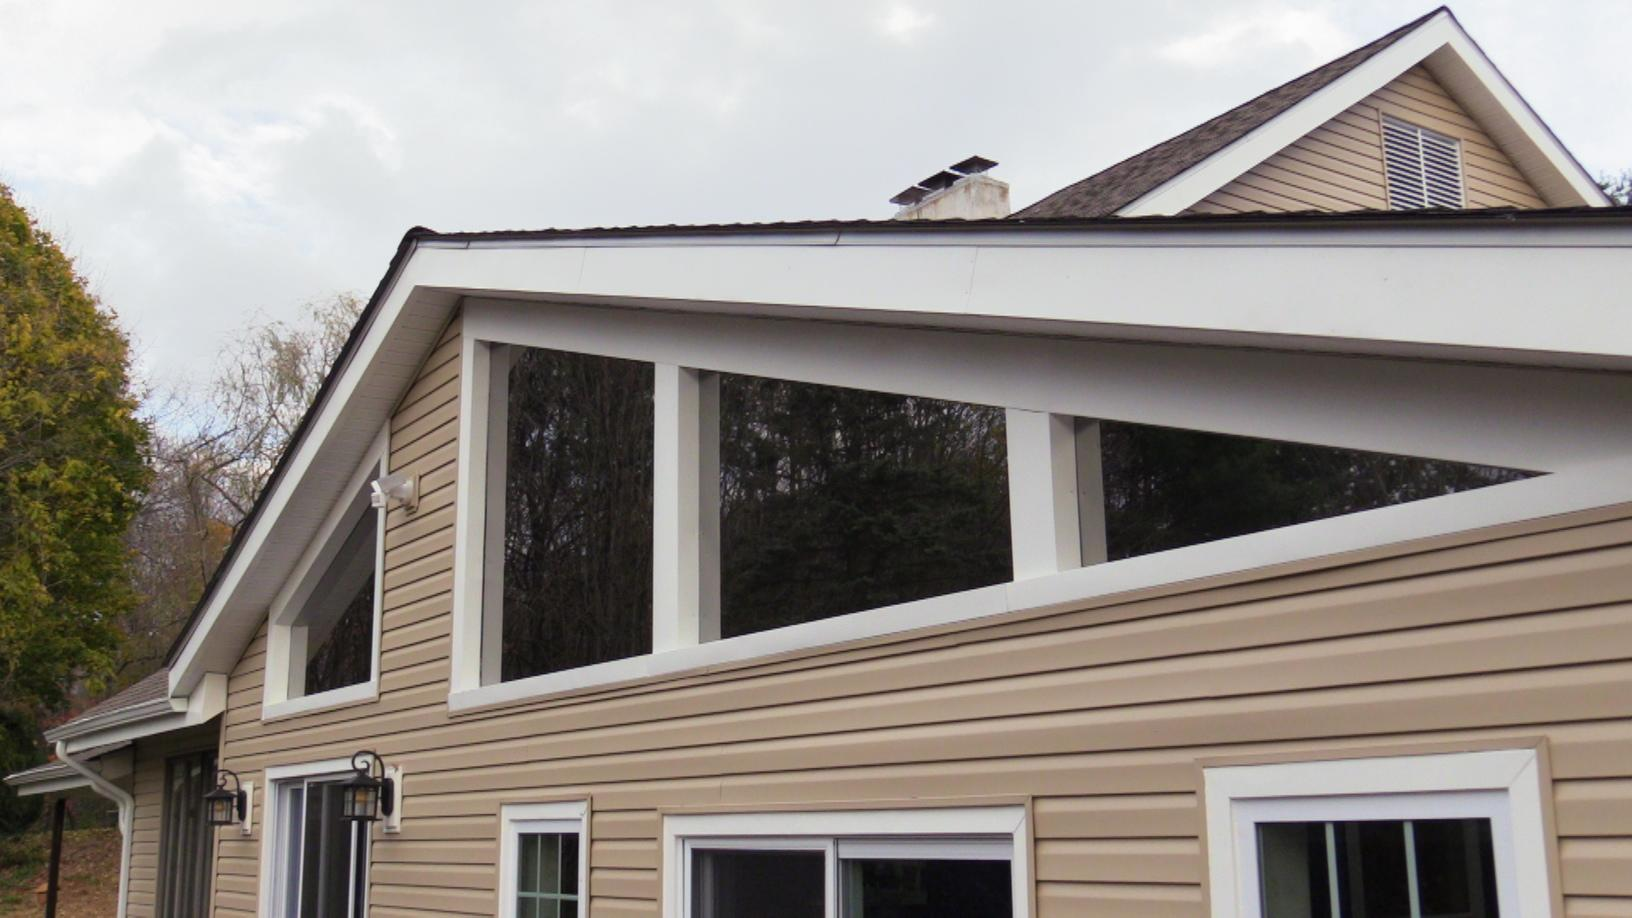 Custom Capping on Custom Windows, Under A New Soffit and Fascia